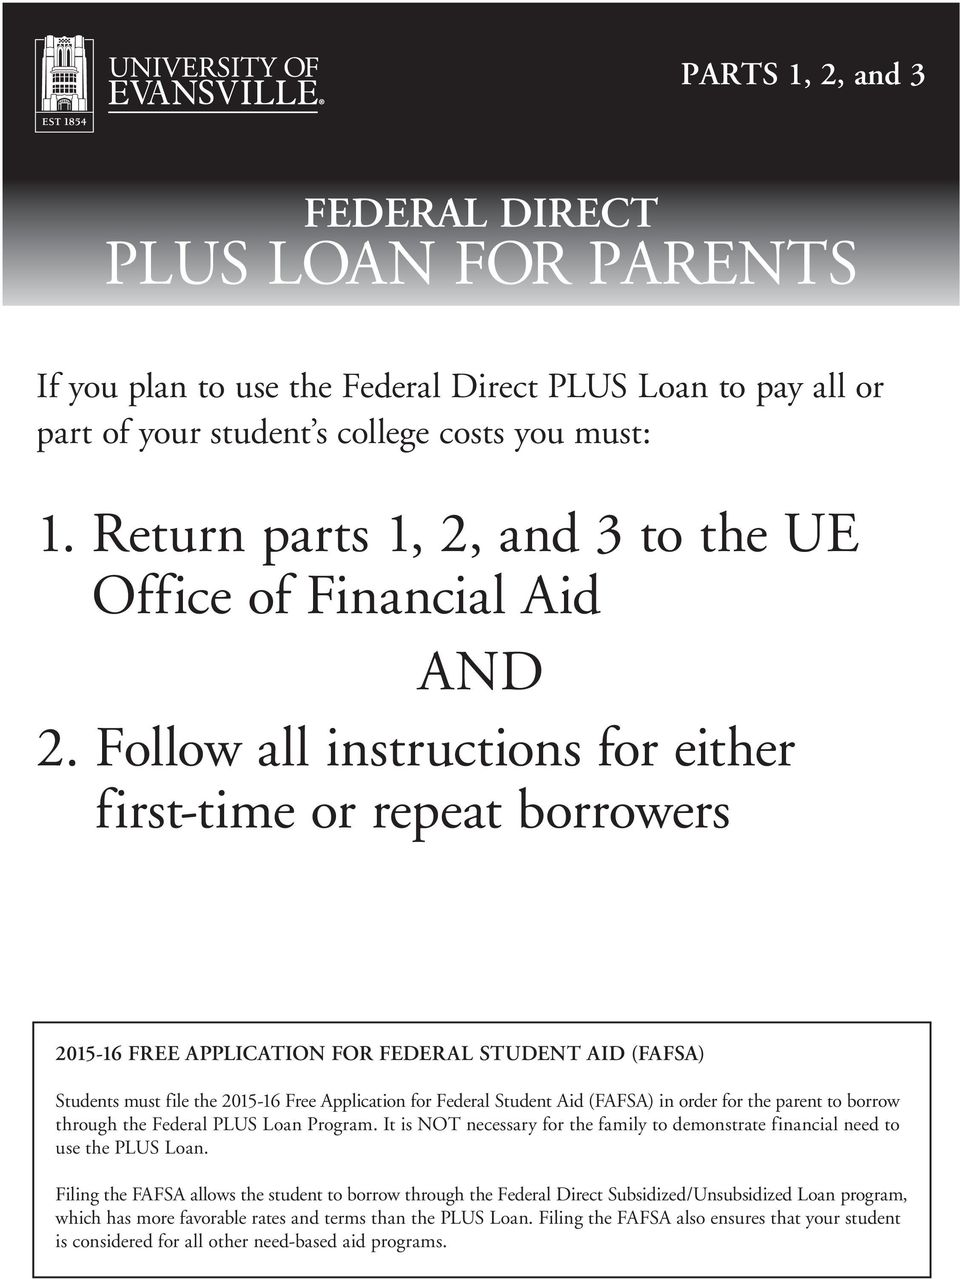 Follow all instructions for either first-time or repeat borrowers 2015-16 FREE APPLICATION FOR FEDERAL STUDENT AID (FAFSA) Students must file the 2015-16 Free Application for Federal Student Aid